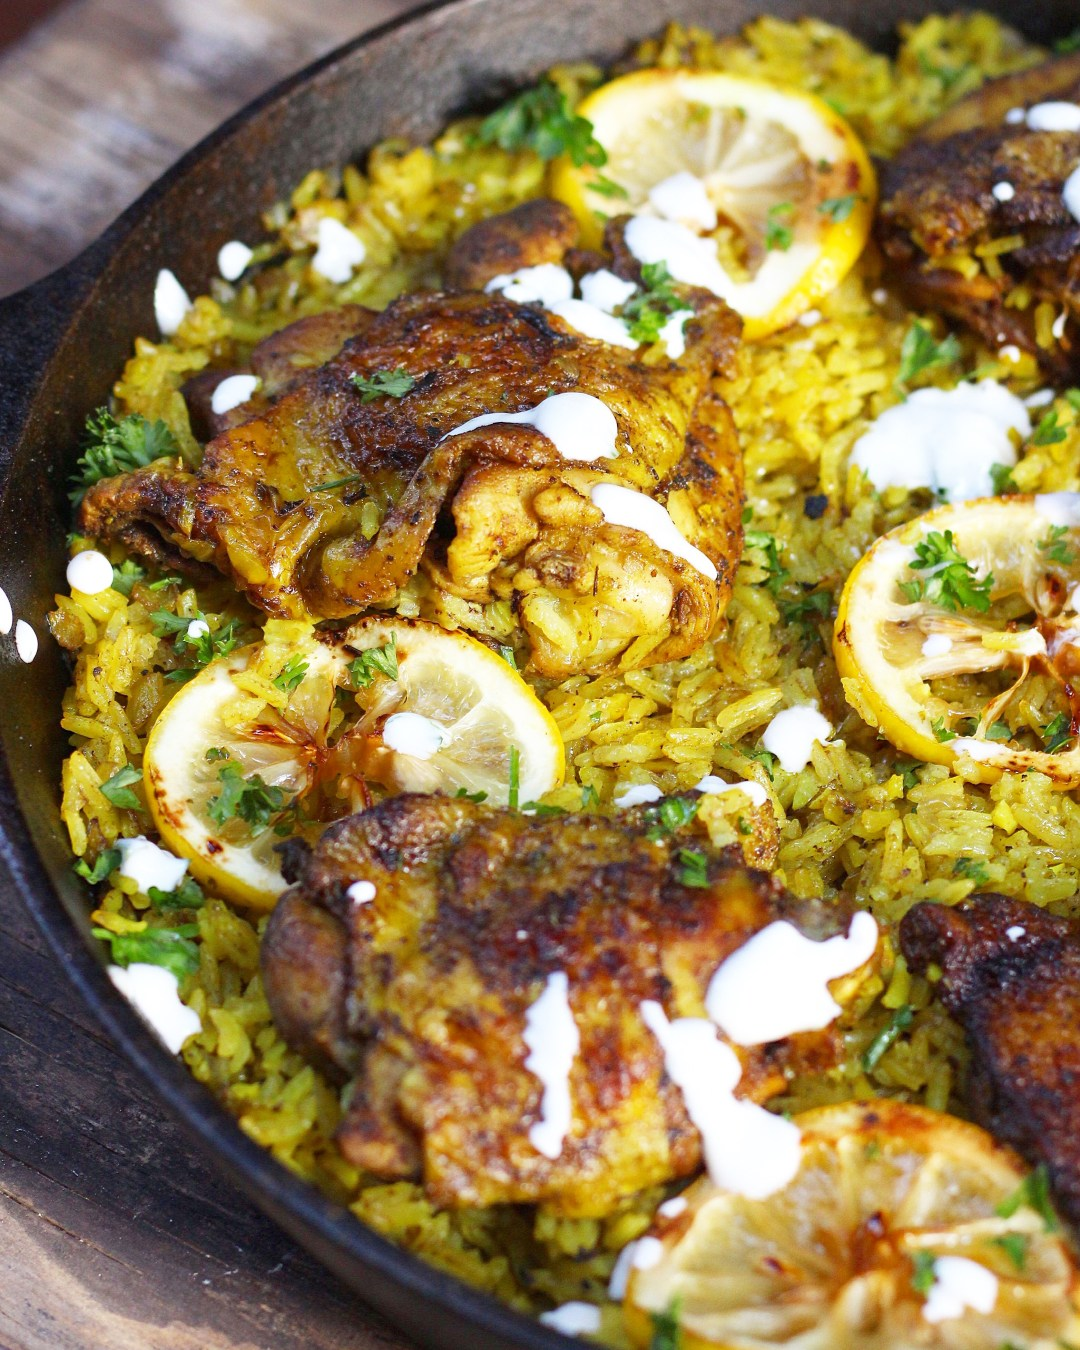 One pot middle eastern chicken and rice evs eats a flavorful middle eastern chicken made with seasoned turmeric rice all in one pot fuss forumfinder Choice Image